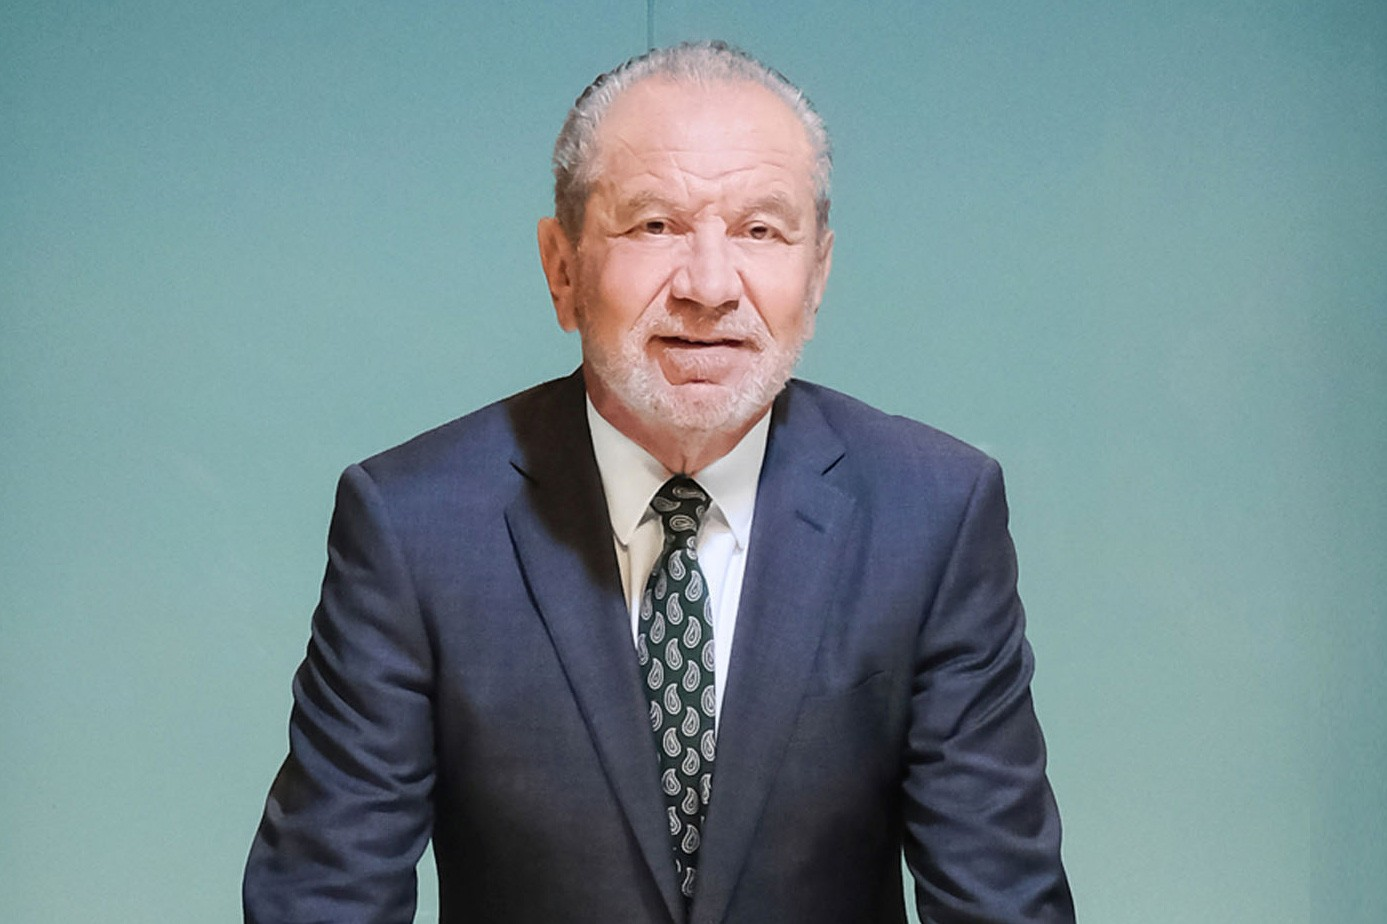 Lord Sugar The Apprentice